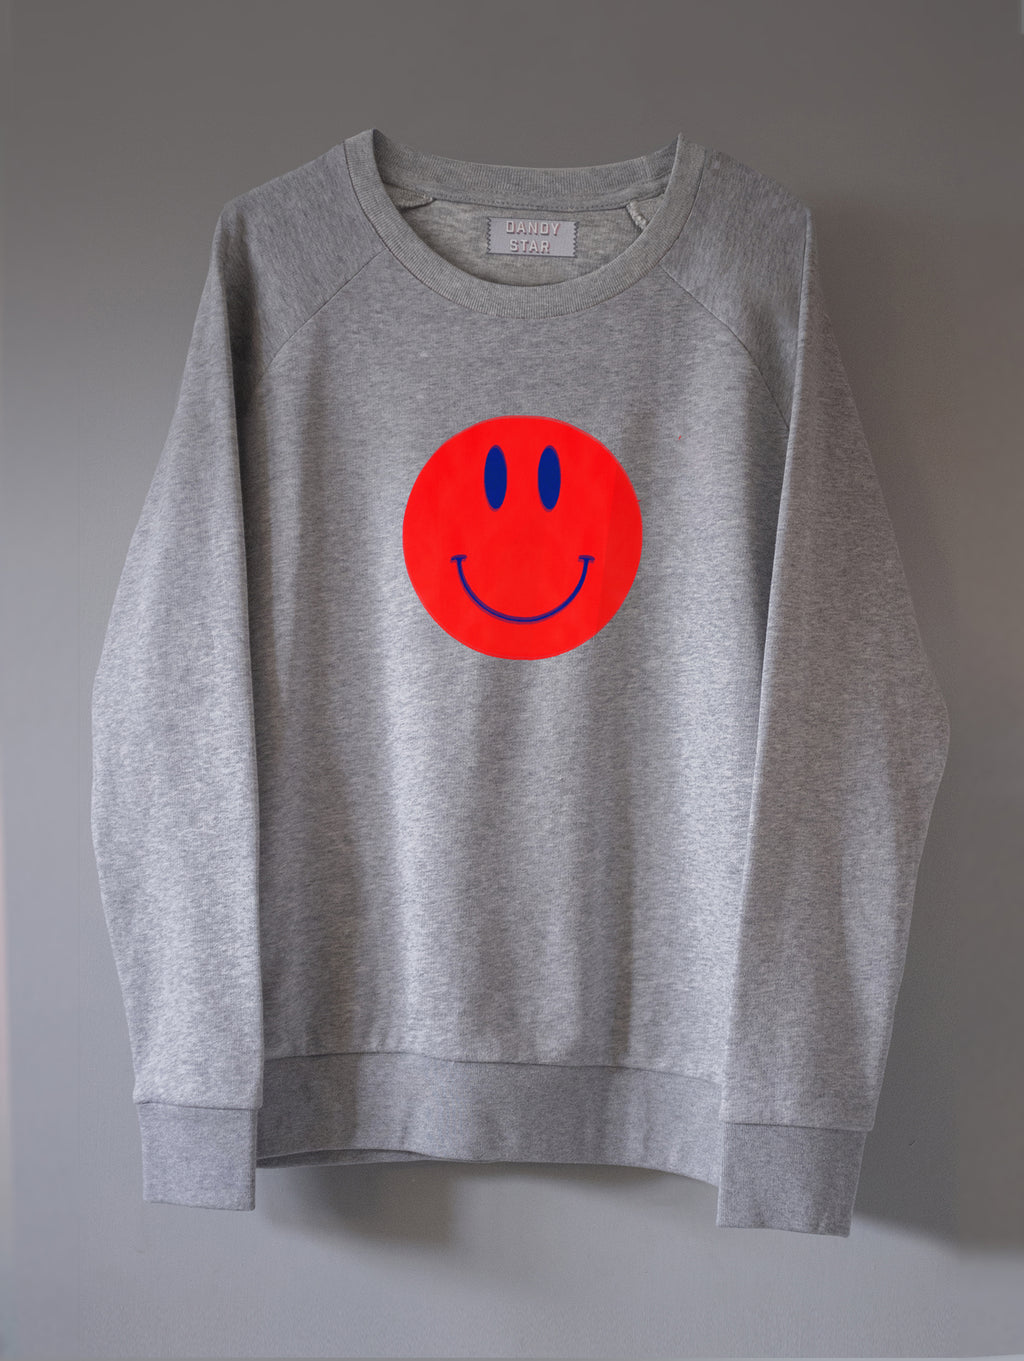 DANDY STAR MARL SMILEY SWEATSHIRT